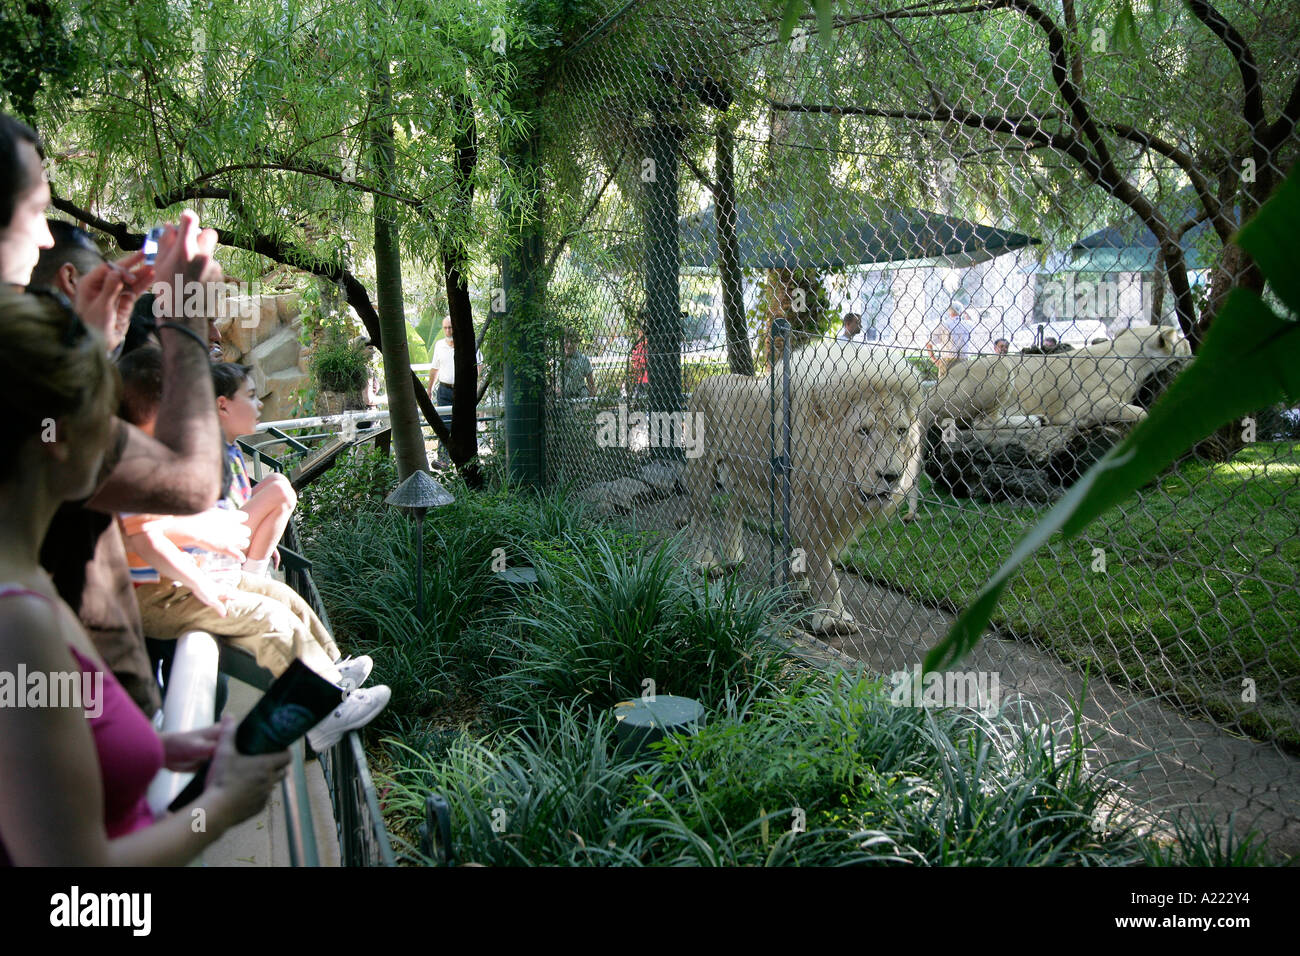 lion siegfried roy s secret garden dolphin habitat las vegas nevada stock image - Siegfried And Roy Secret Garden